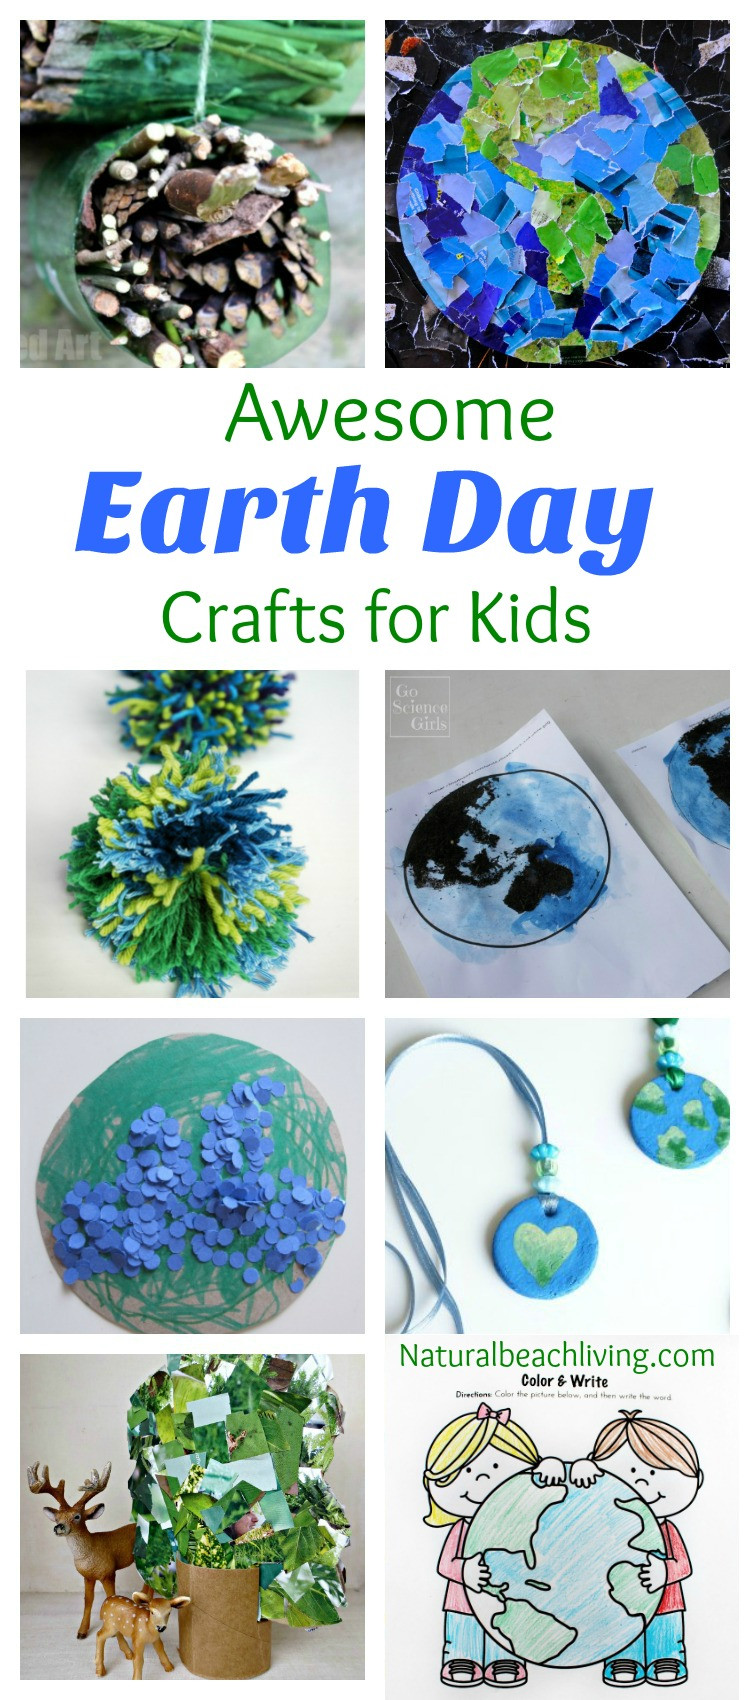 Earth Day Craft Ideas For Preschoolers  30 Creative Earth Day Crafts and Activities for Kids